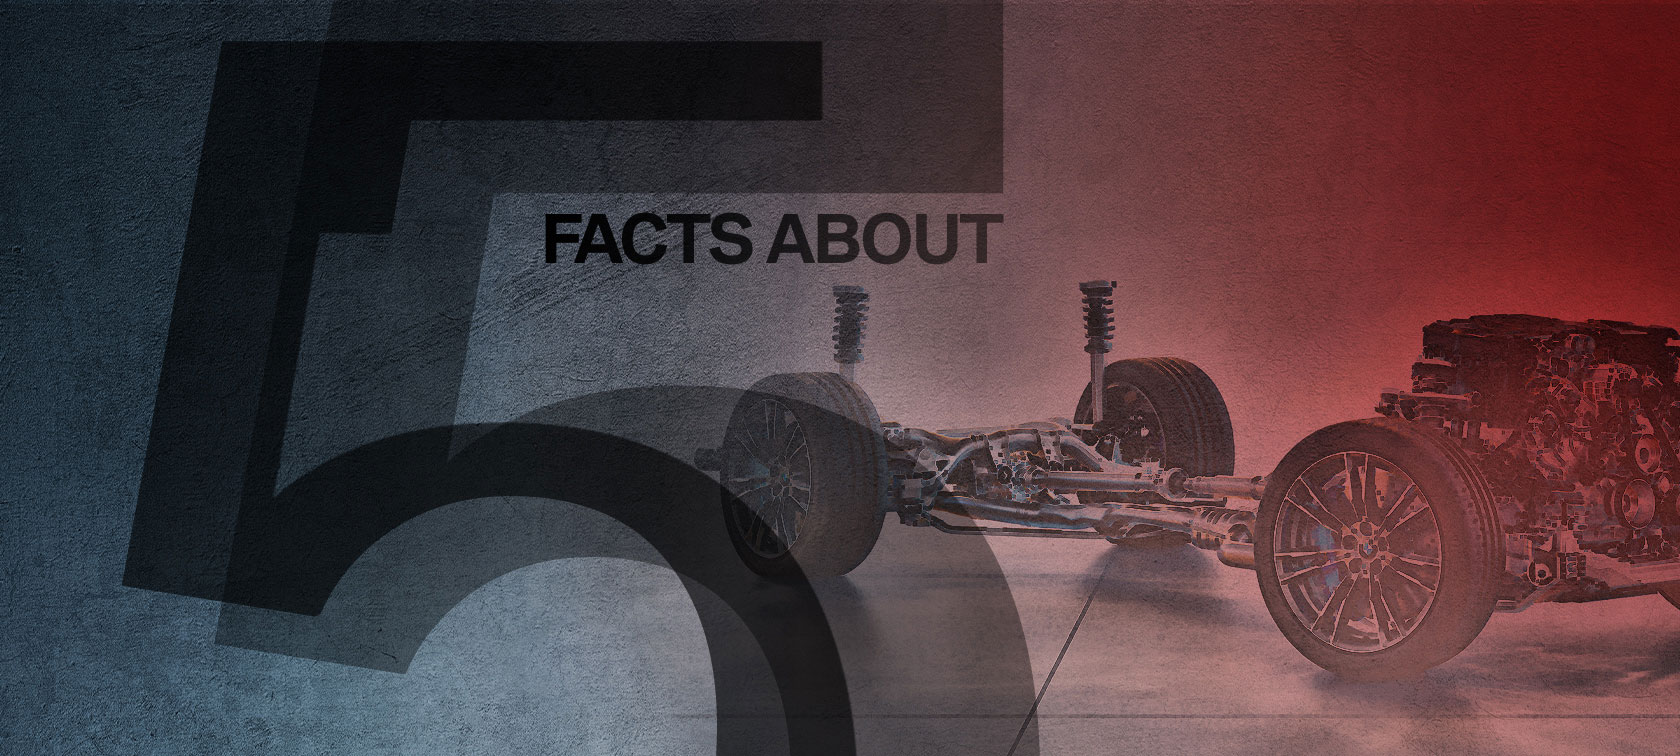 5 facts about: M xDrive